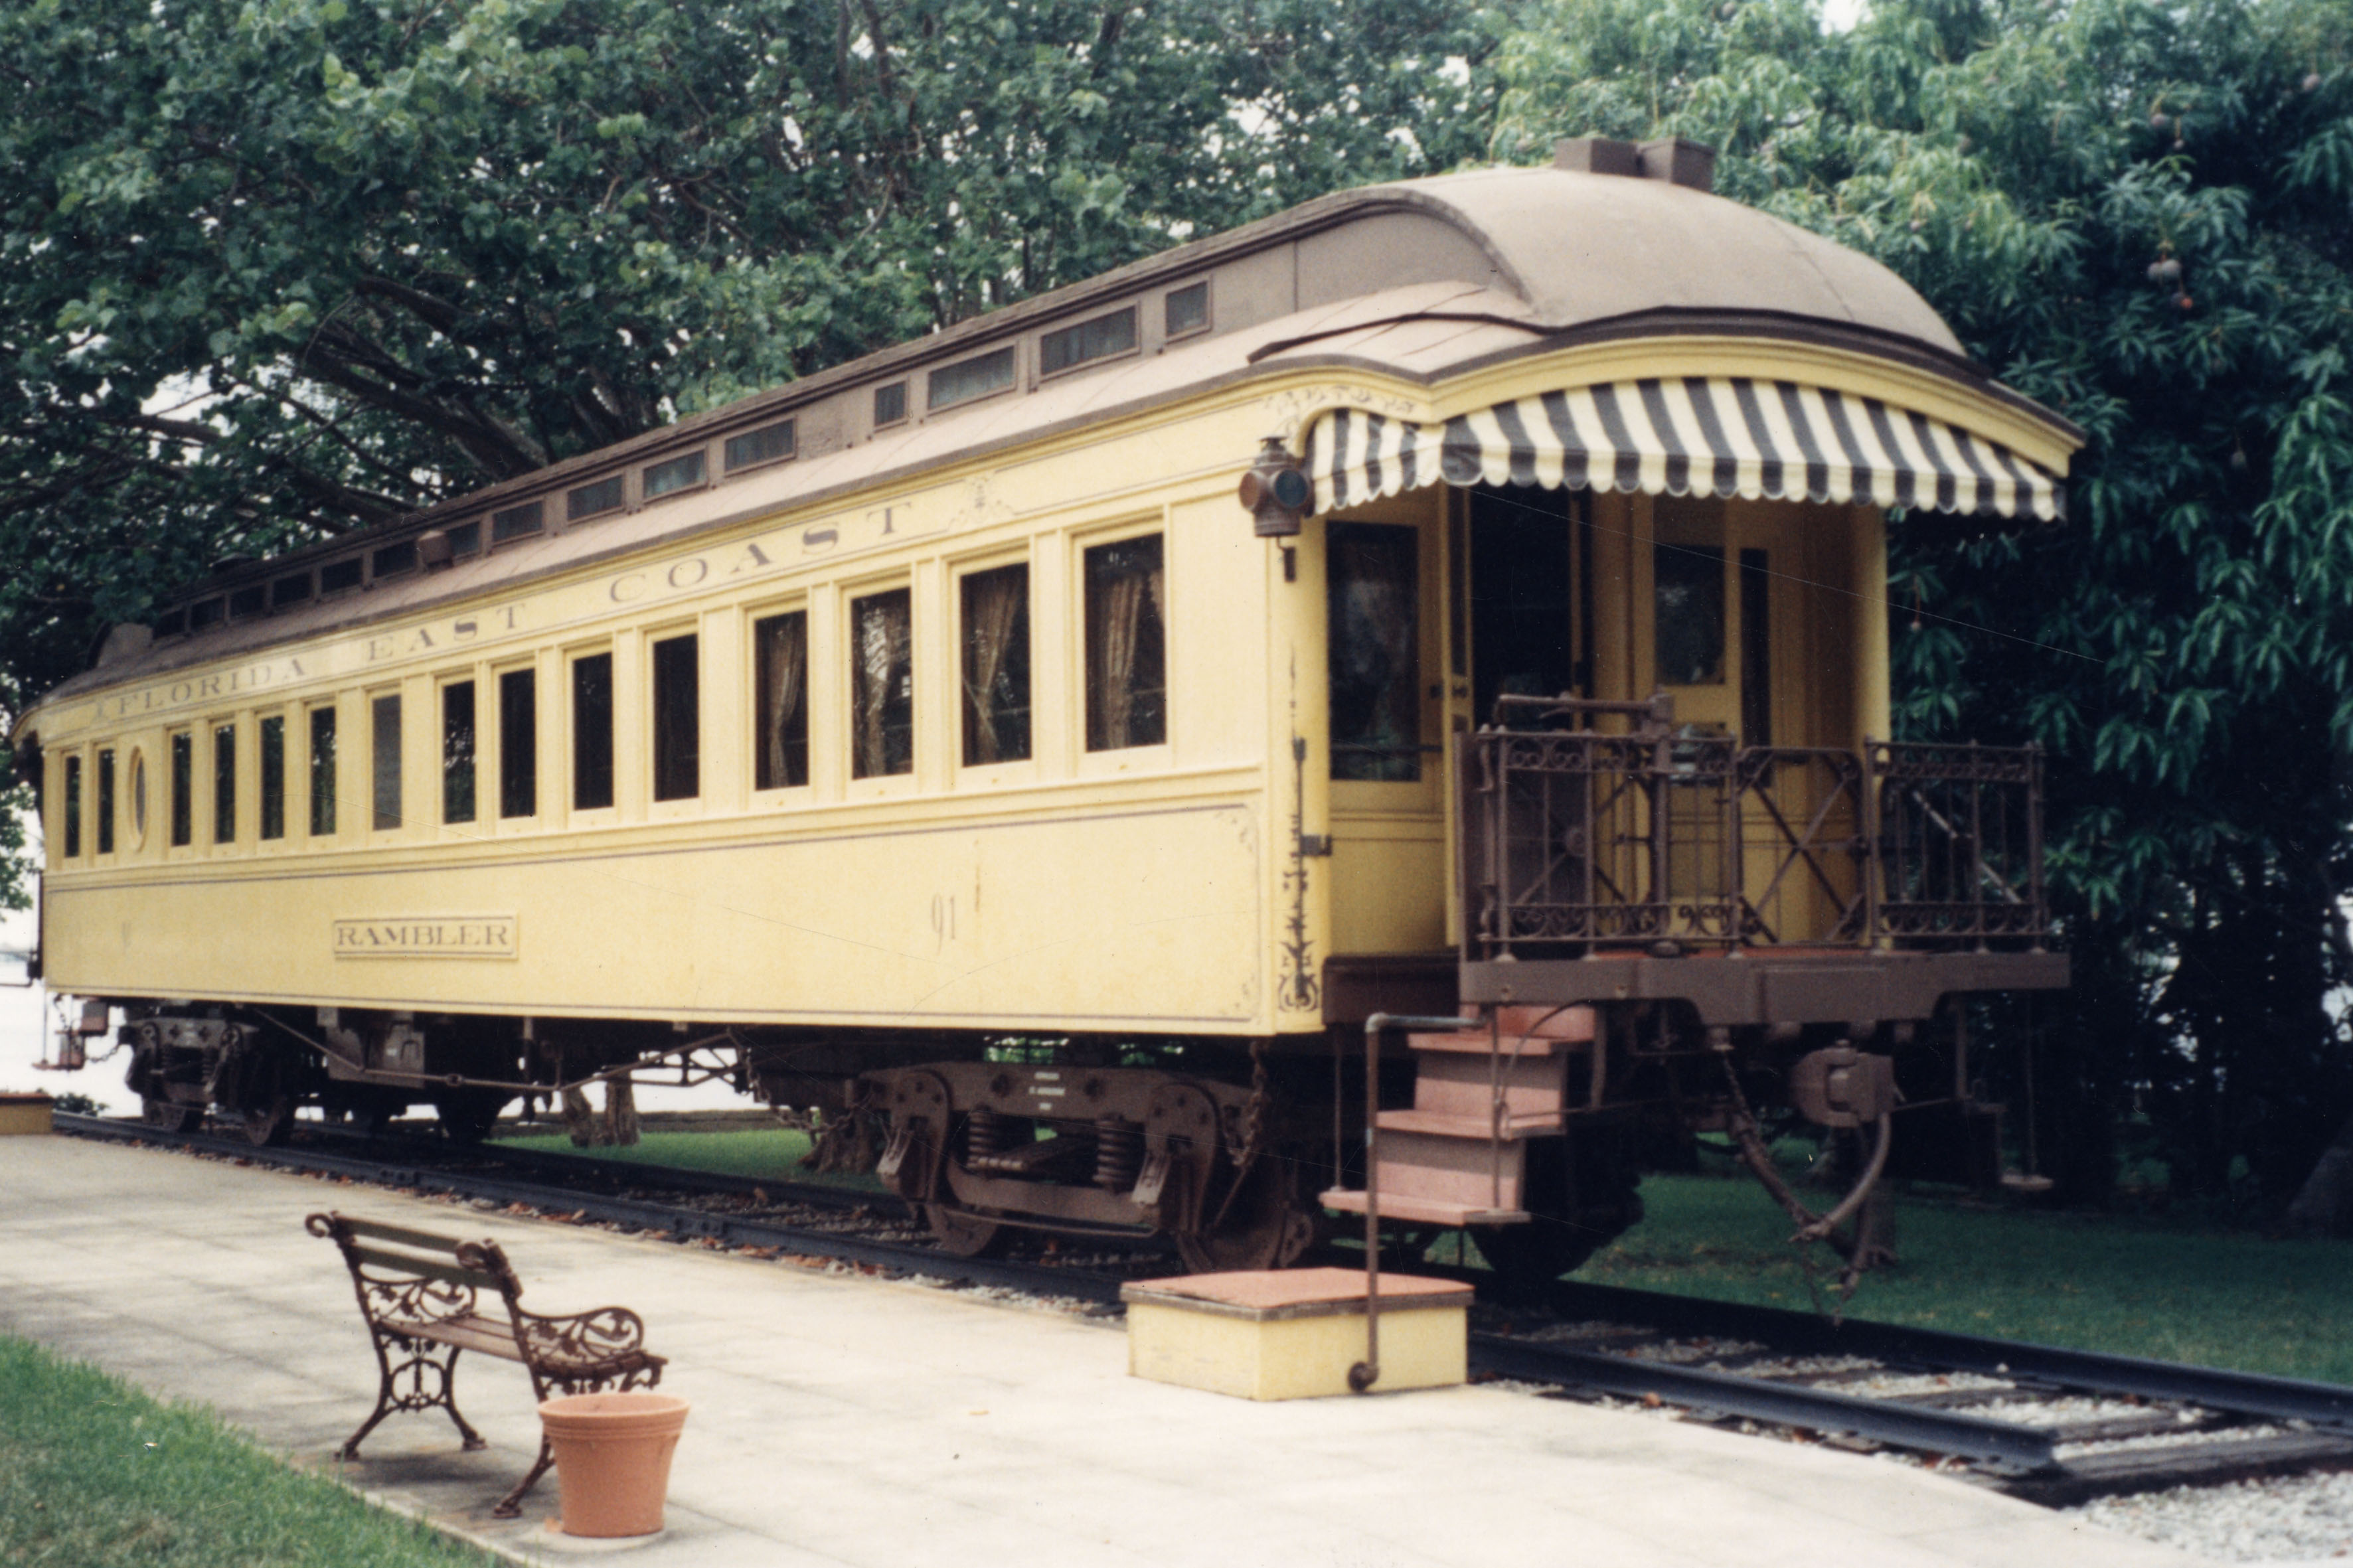 Henry Flagler's private railway car at Whitehall in 1993. Photo by Tom Hambright. Photo property of the Florida-Keys Public Library